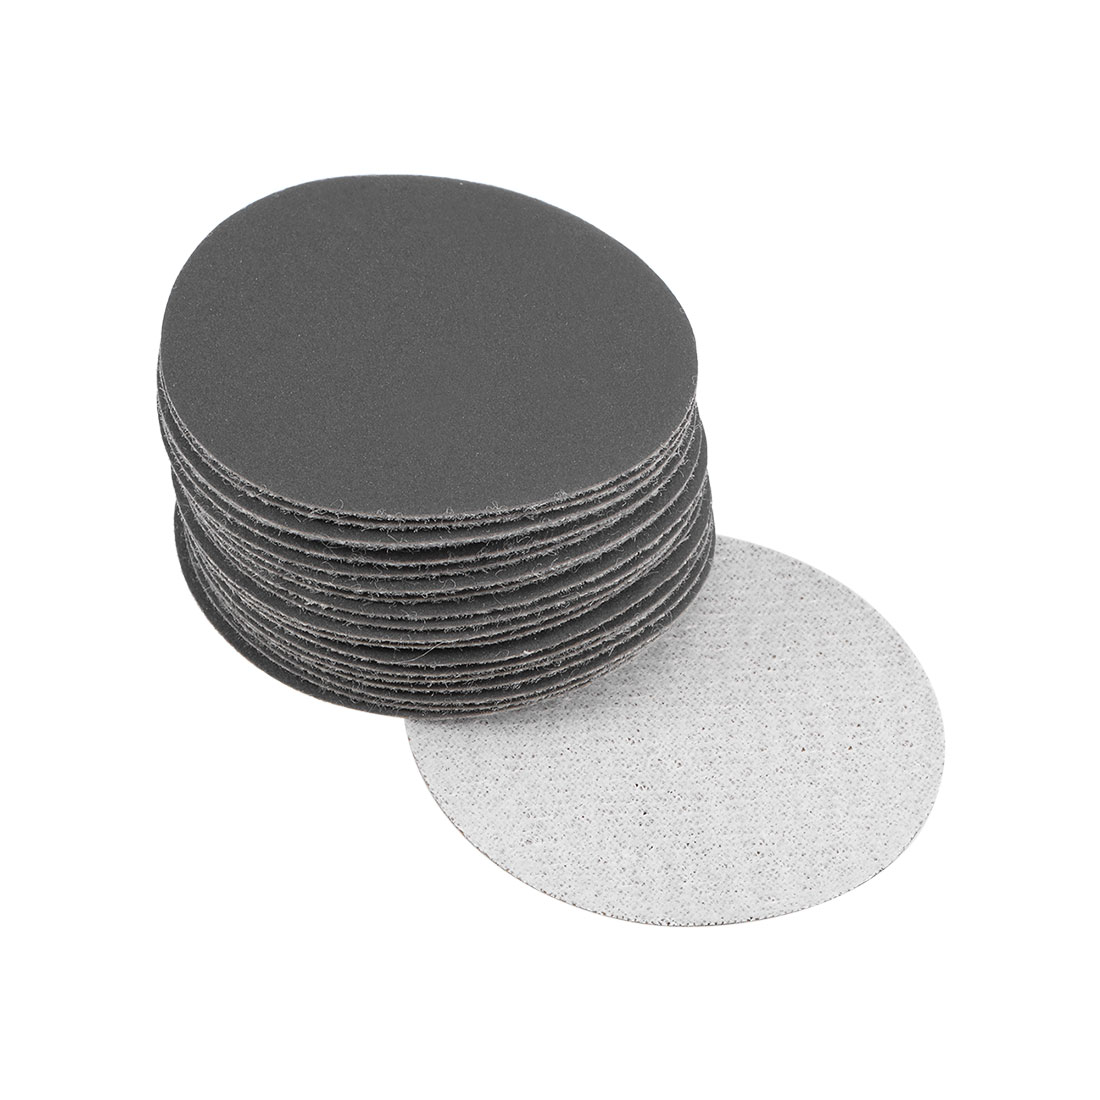 2 inch Wet Dry Discs 800 Grit Hook and Loop Sanding Disc Silicon Carbide 20pcs